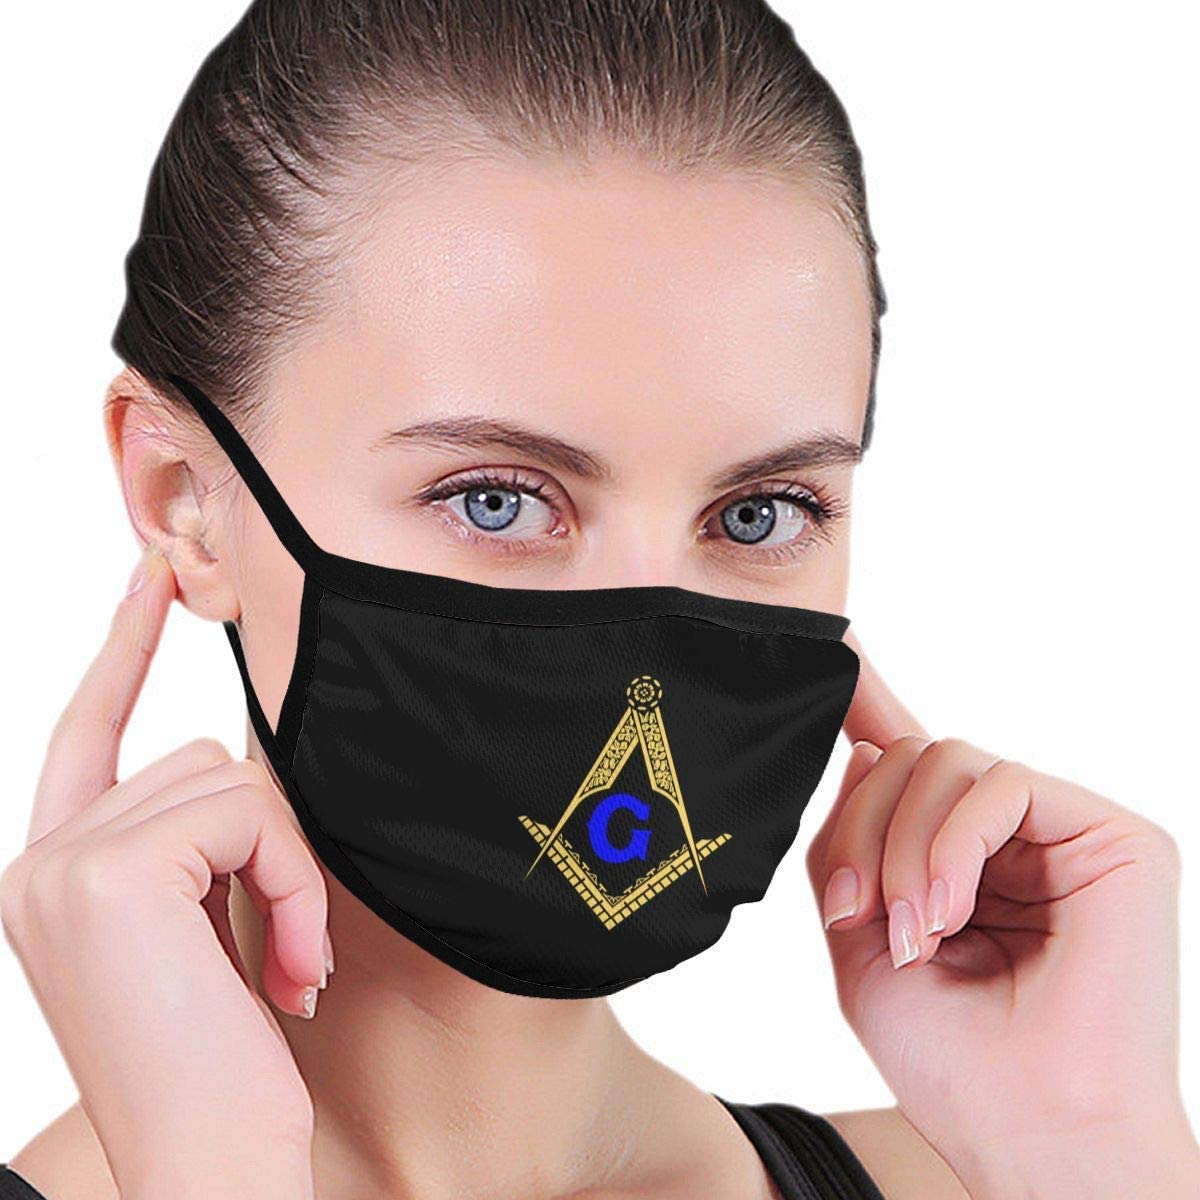 BOKUTT Freemason Masonic Adult Kids Graphics Washable Reusable Ear Ear Warmer Headband Household Mouth Wear